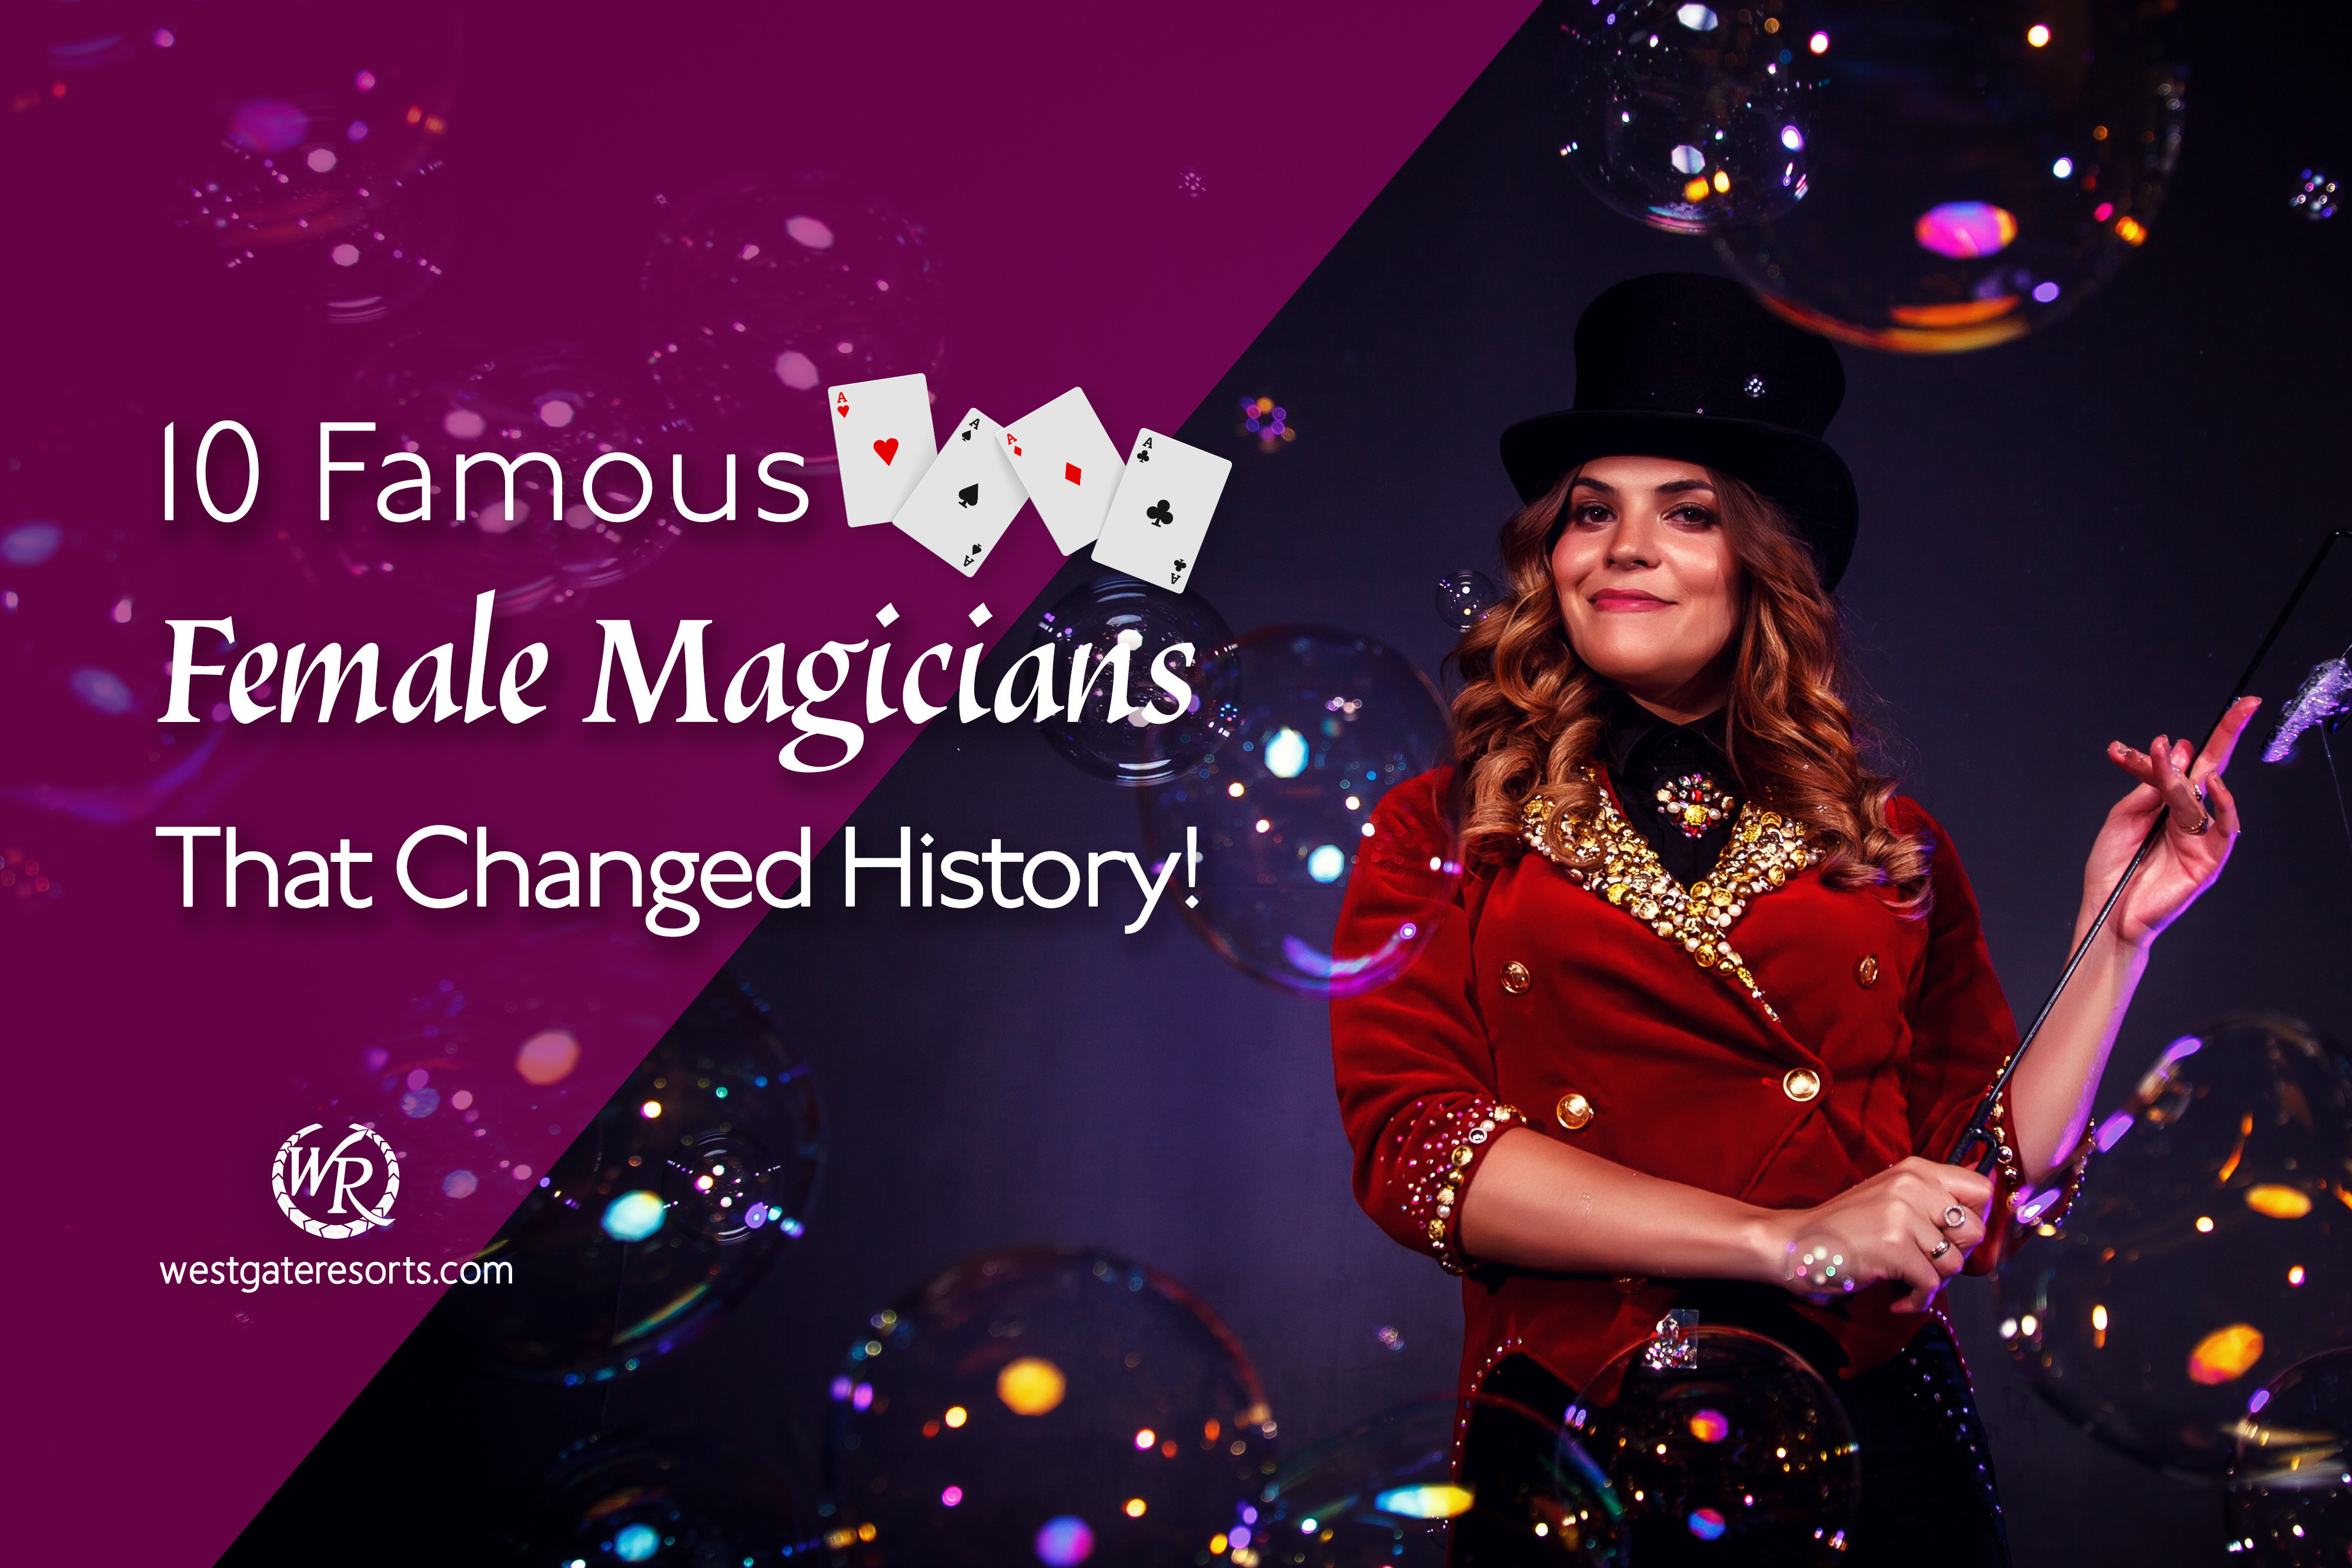 10 Famous Female Magicians That Changed History!